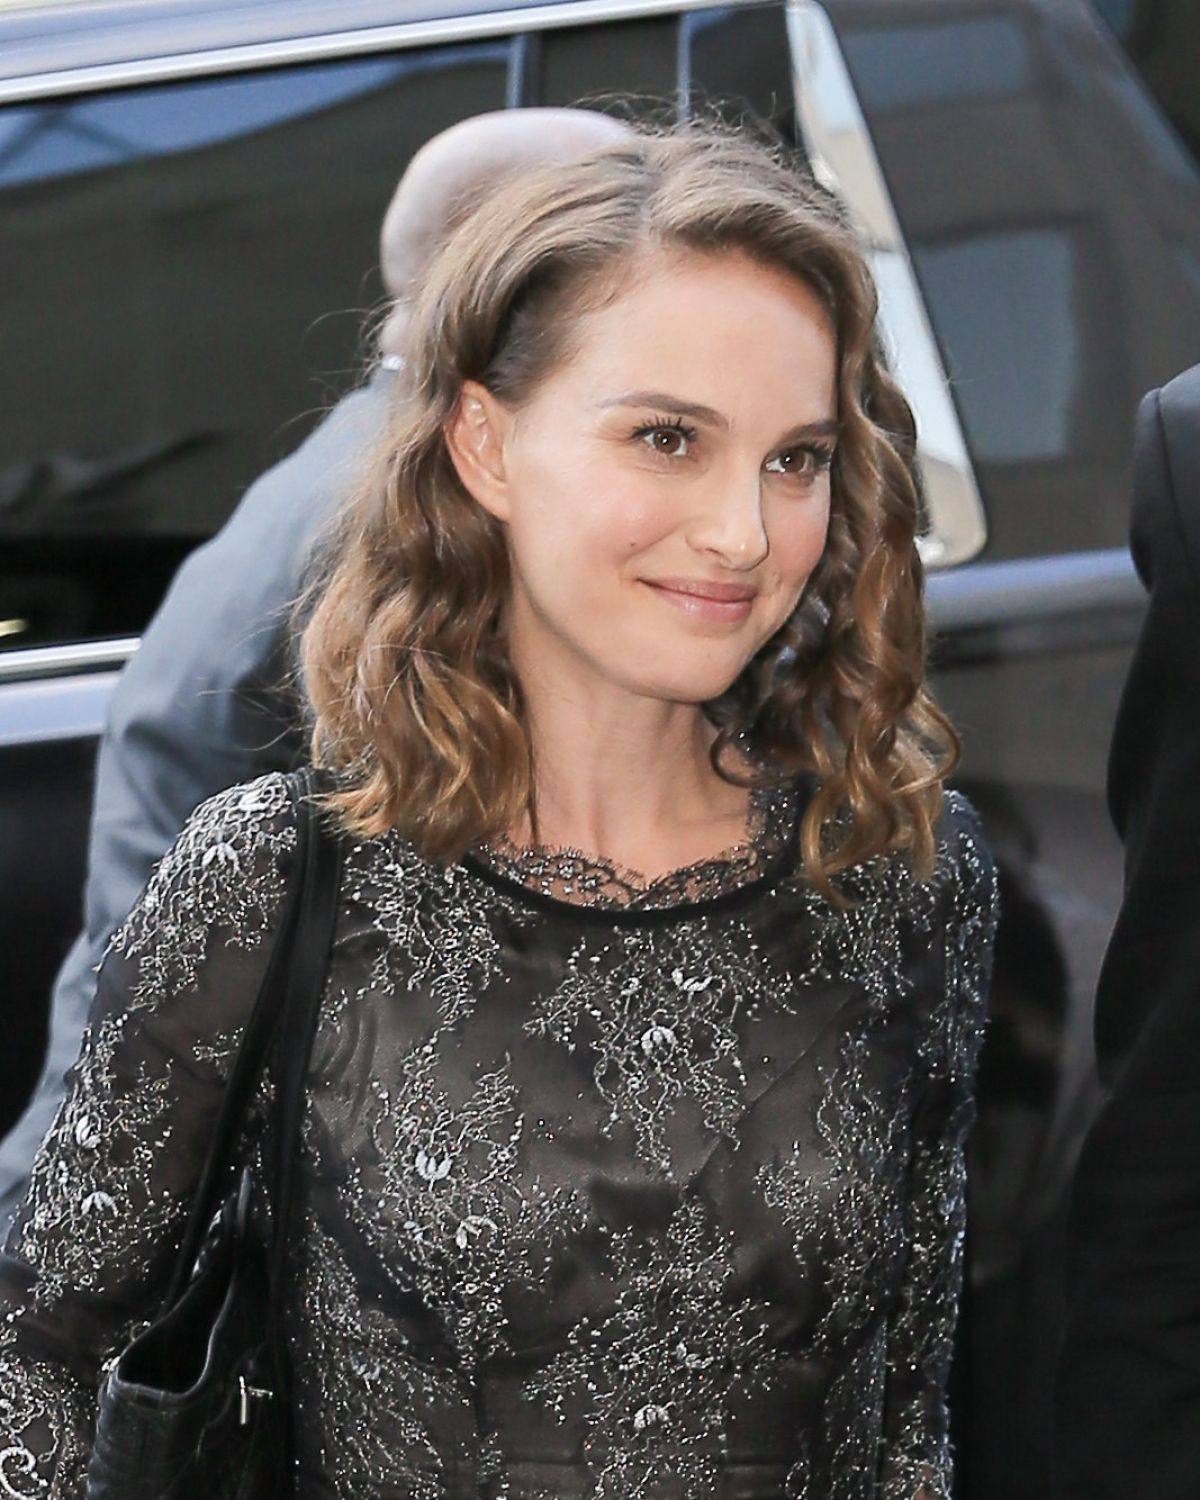 NATALIE PORTMAN Arrives at a Studio in New York 08/18/2016 ...